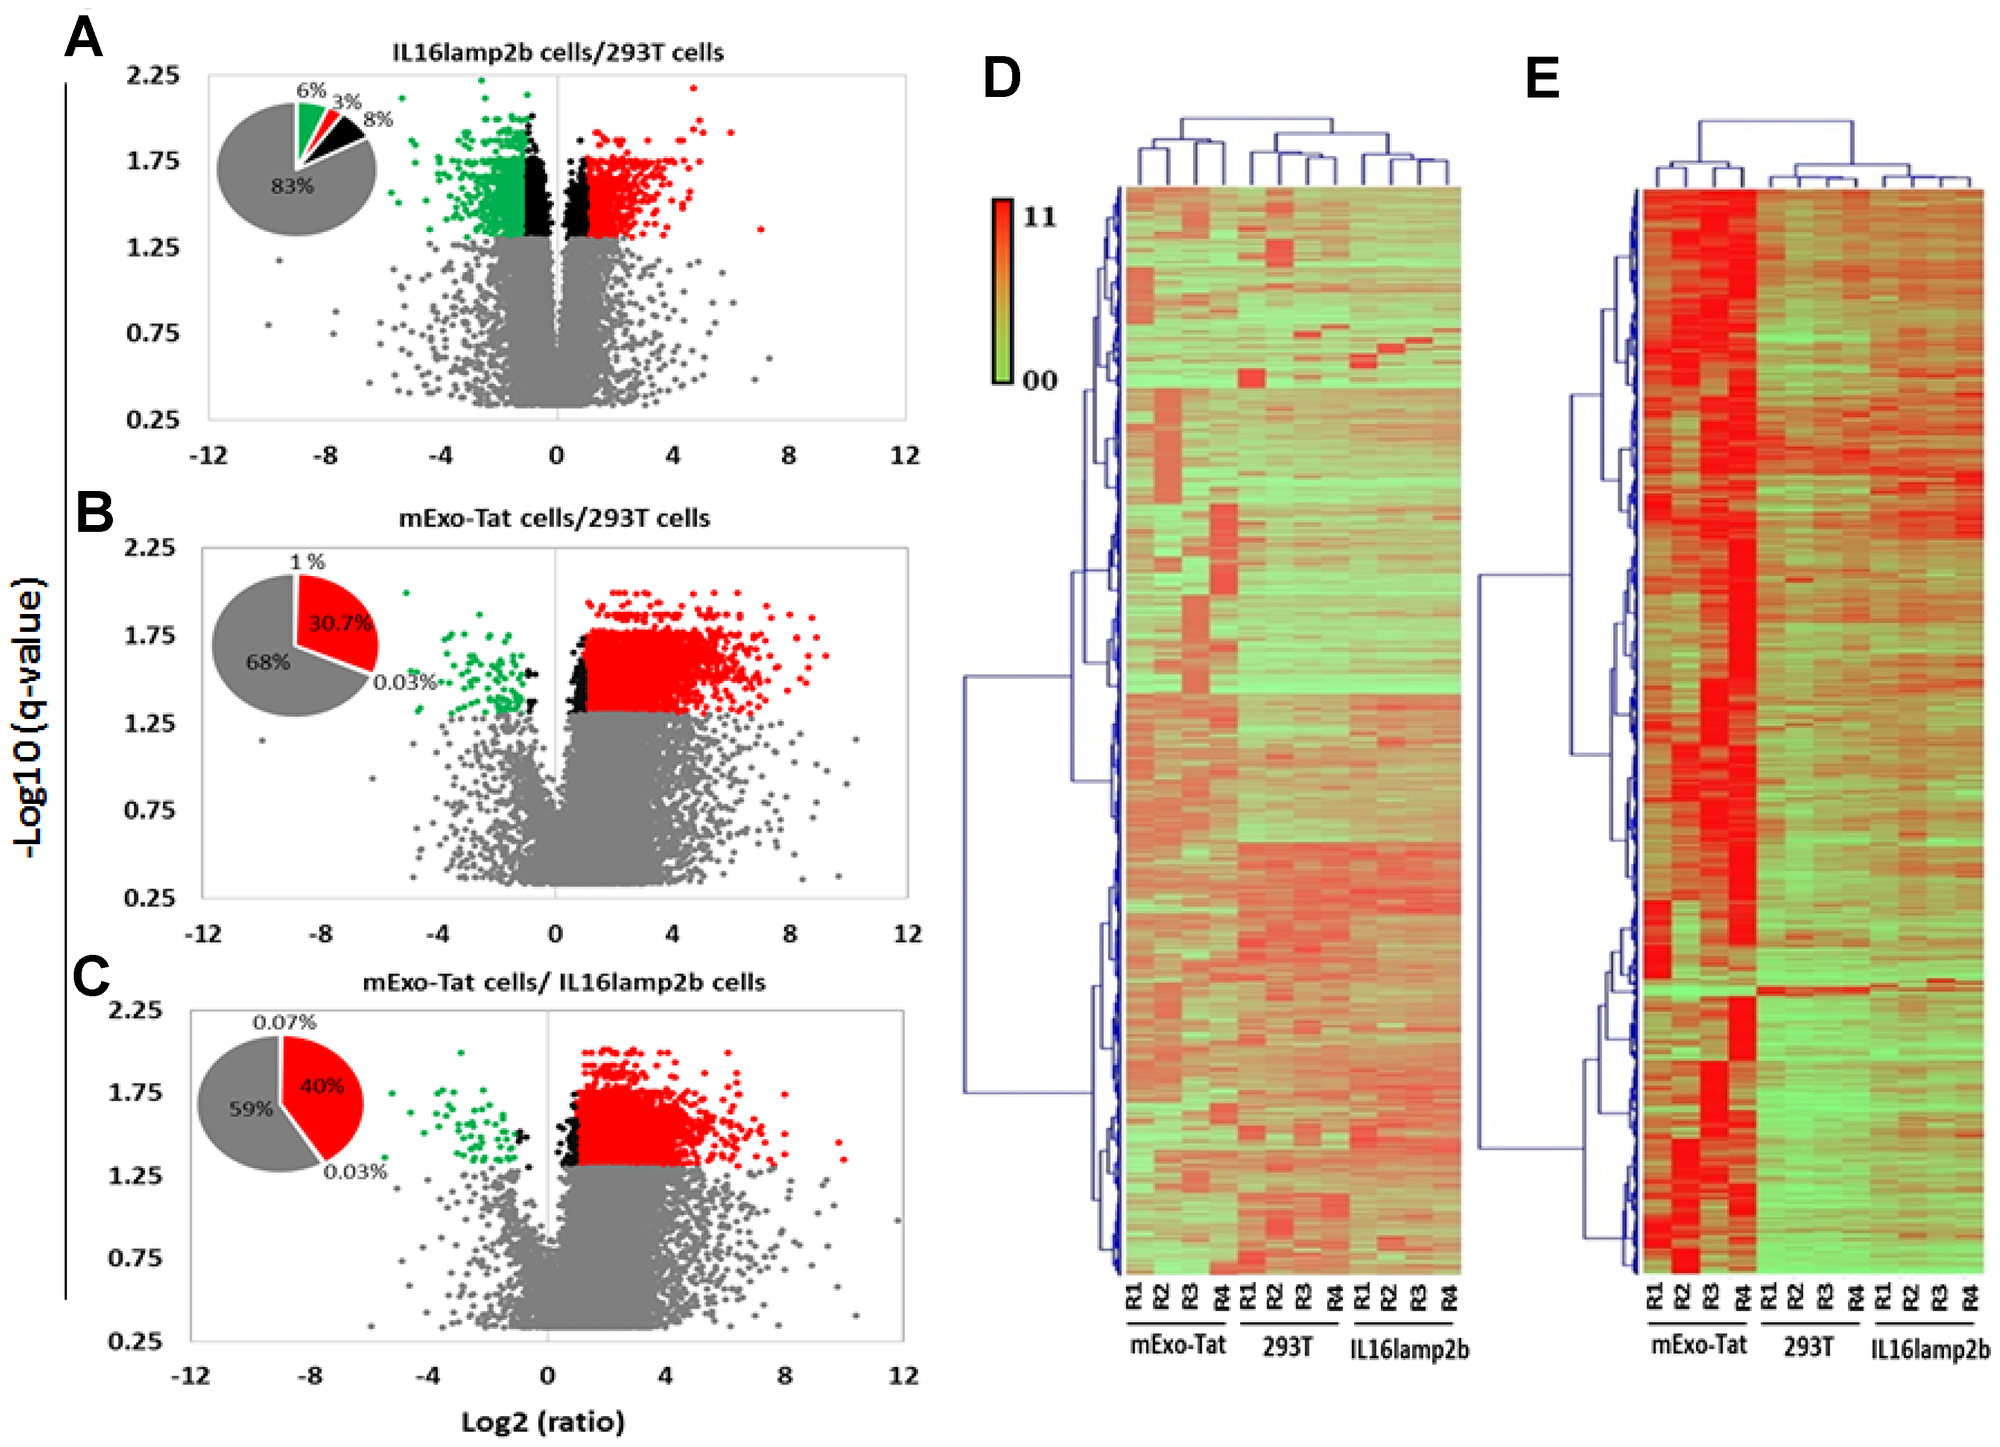 Quantitative analysis of the proteomics dataset obtained from 293T, IL16lamp2b and mExo-Tat samples.